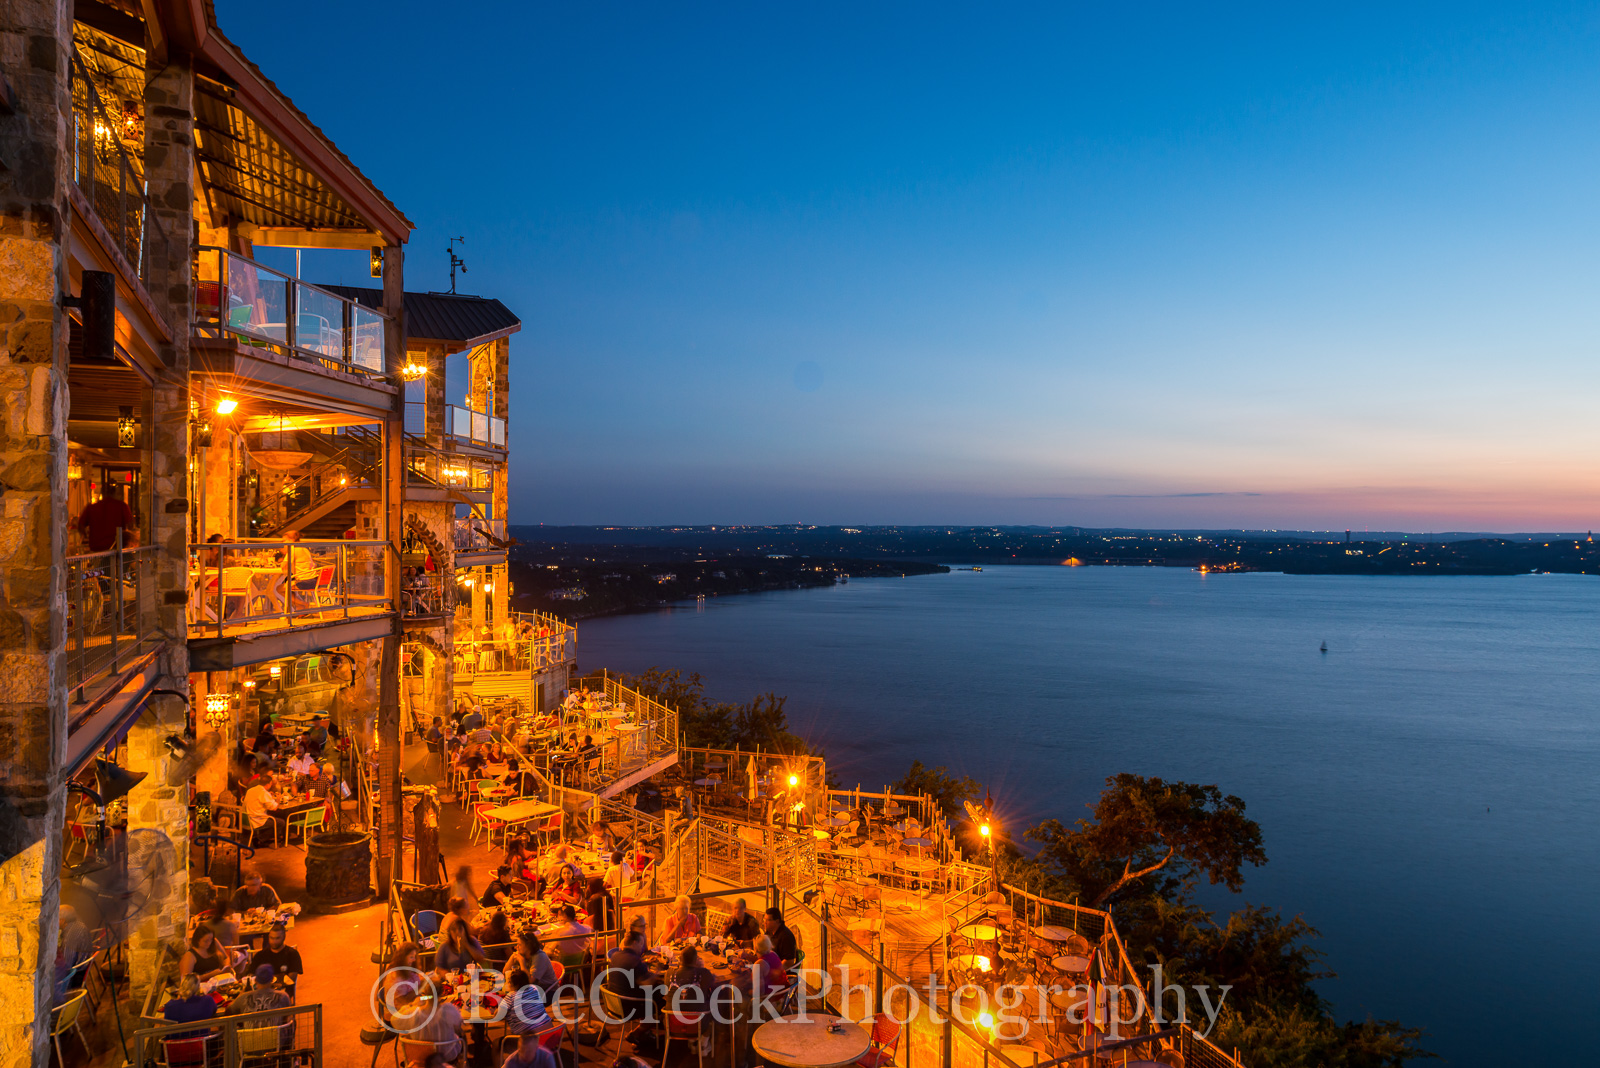 Austin, Hill Country, Lake Travis, Oaisis, TX, boating, drink, fishing, food, lake, landscape, landscapes, recreation, restaurant, sailing, scenic, skiing, sunset, swimming, texas, views, water, photo